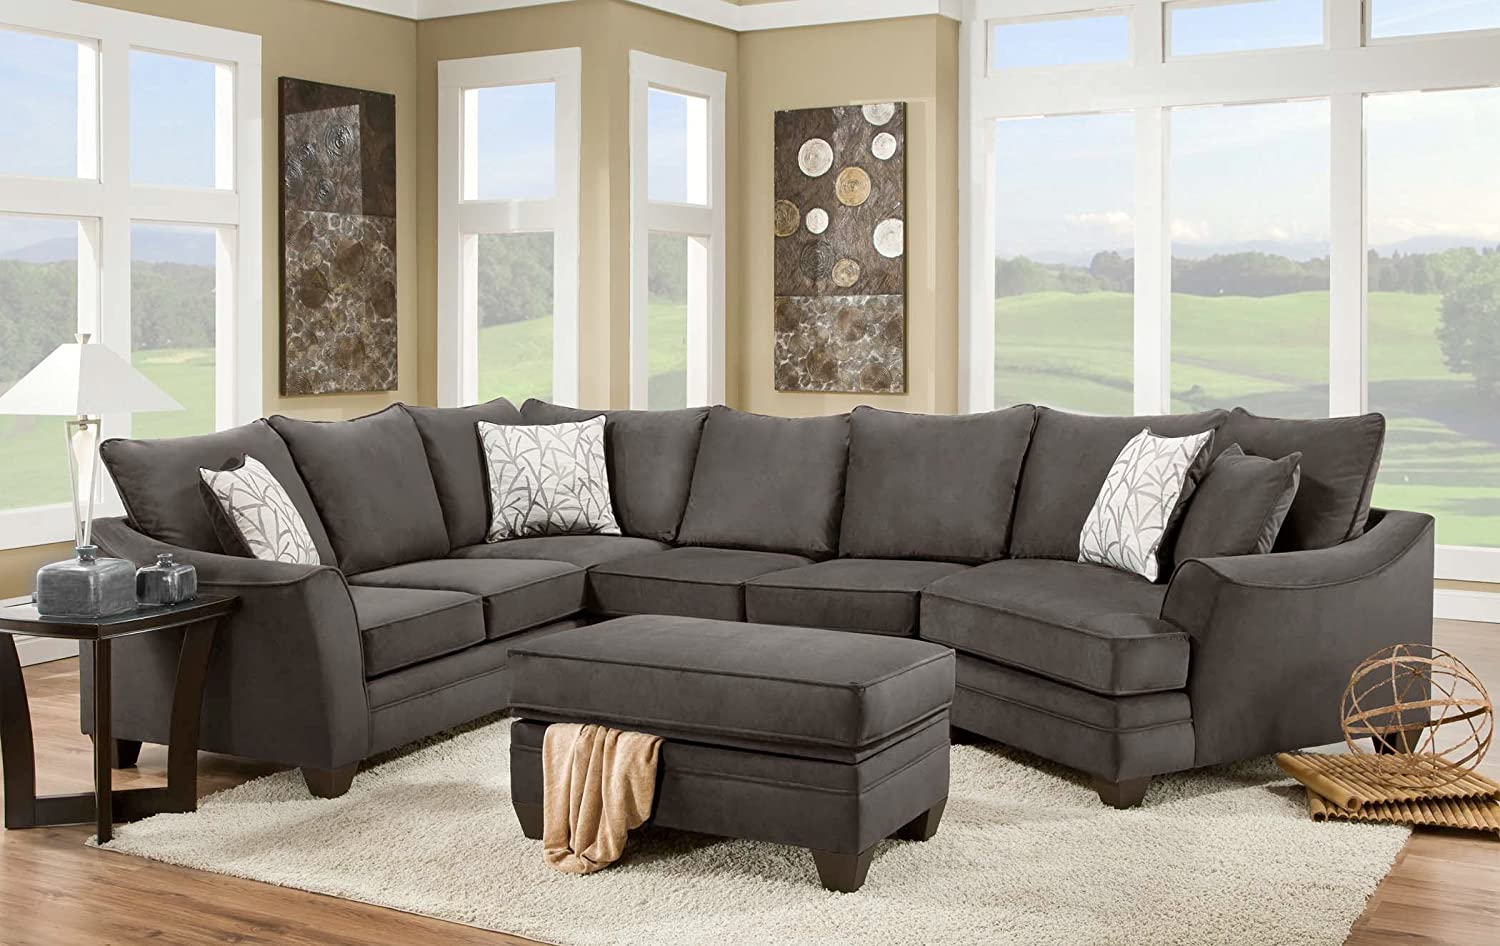 Amazon.com: Chelsea Home Furniture Cupertino 3 Piece Sectional, Flannel  Seal: Kitchen U0026 Dining